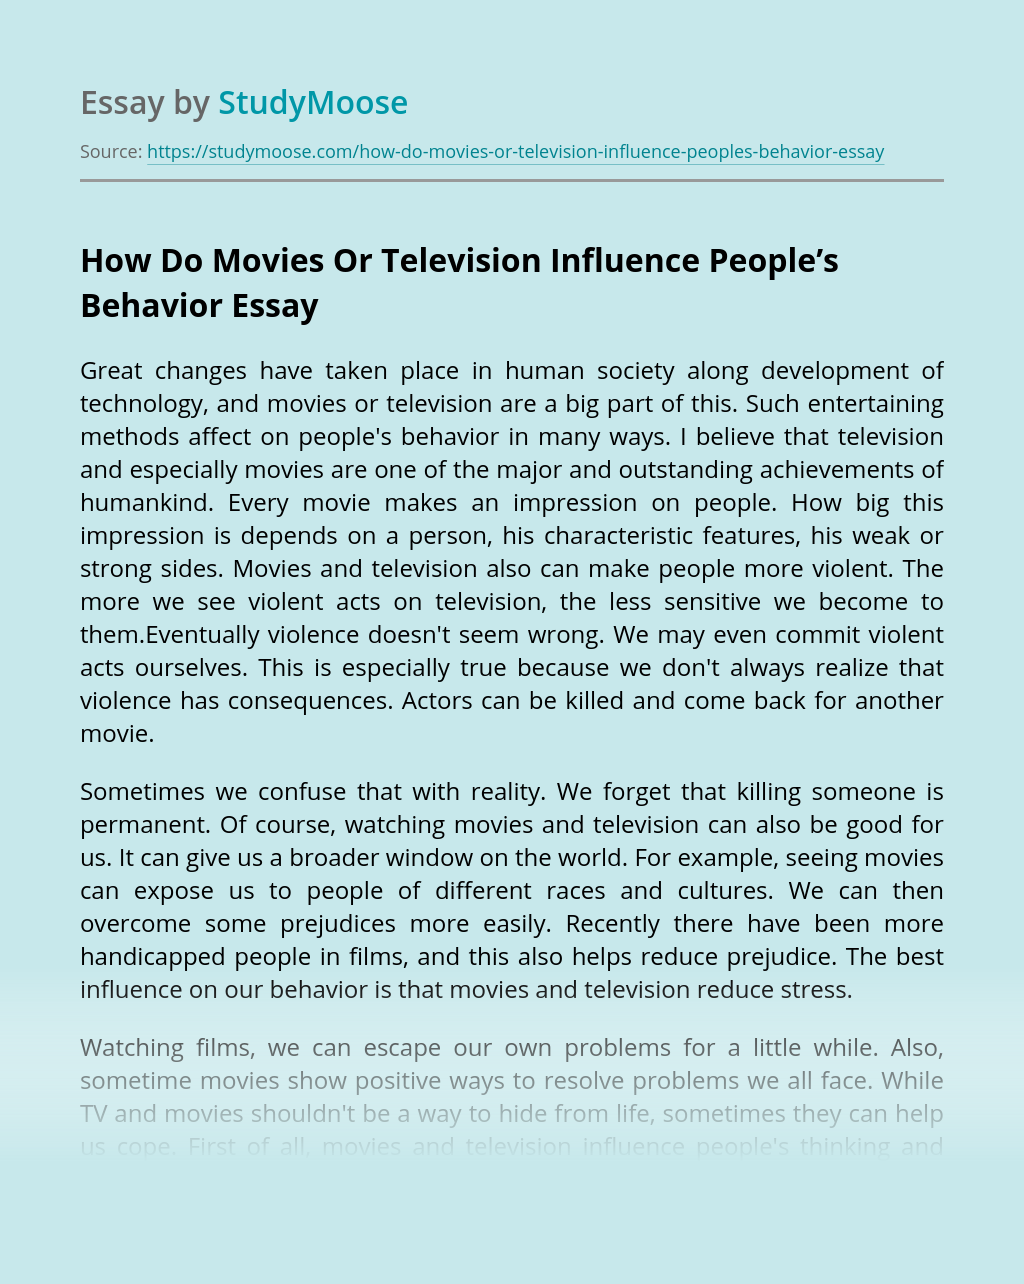 How Do Movies Or Television Influence People's Behavior